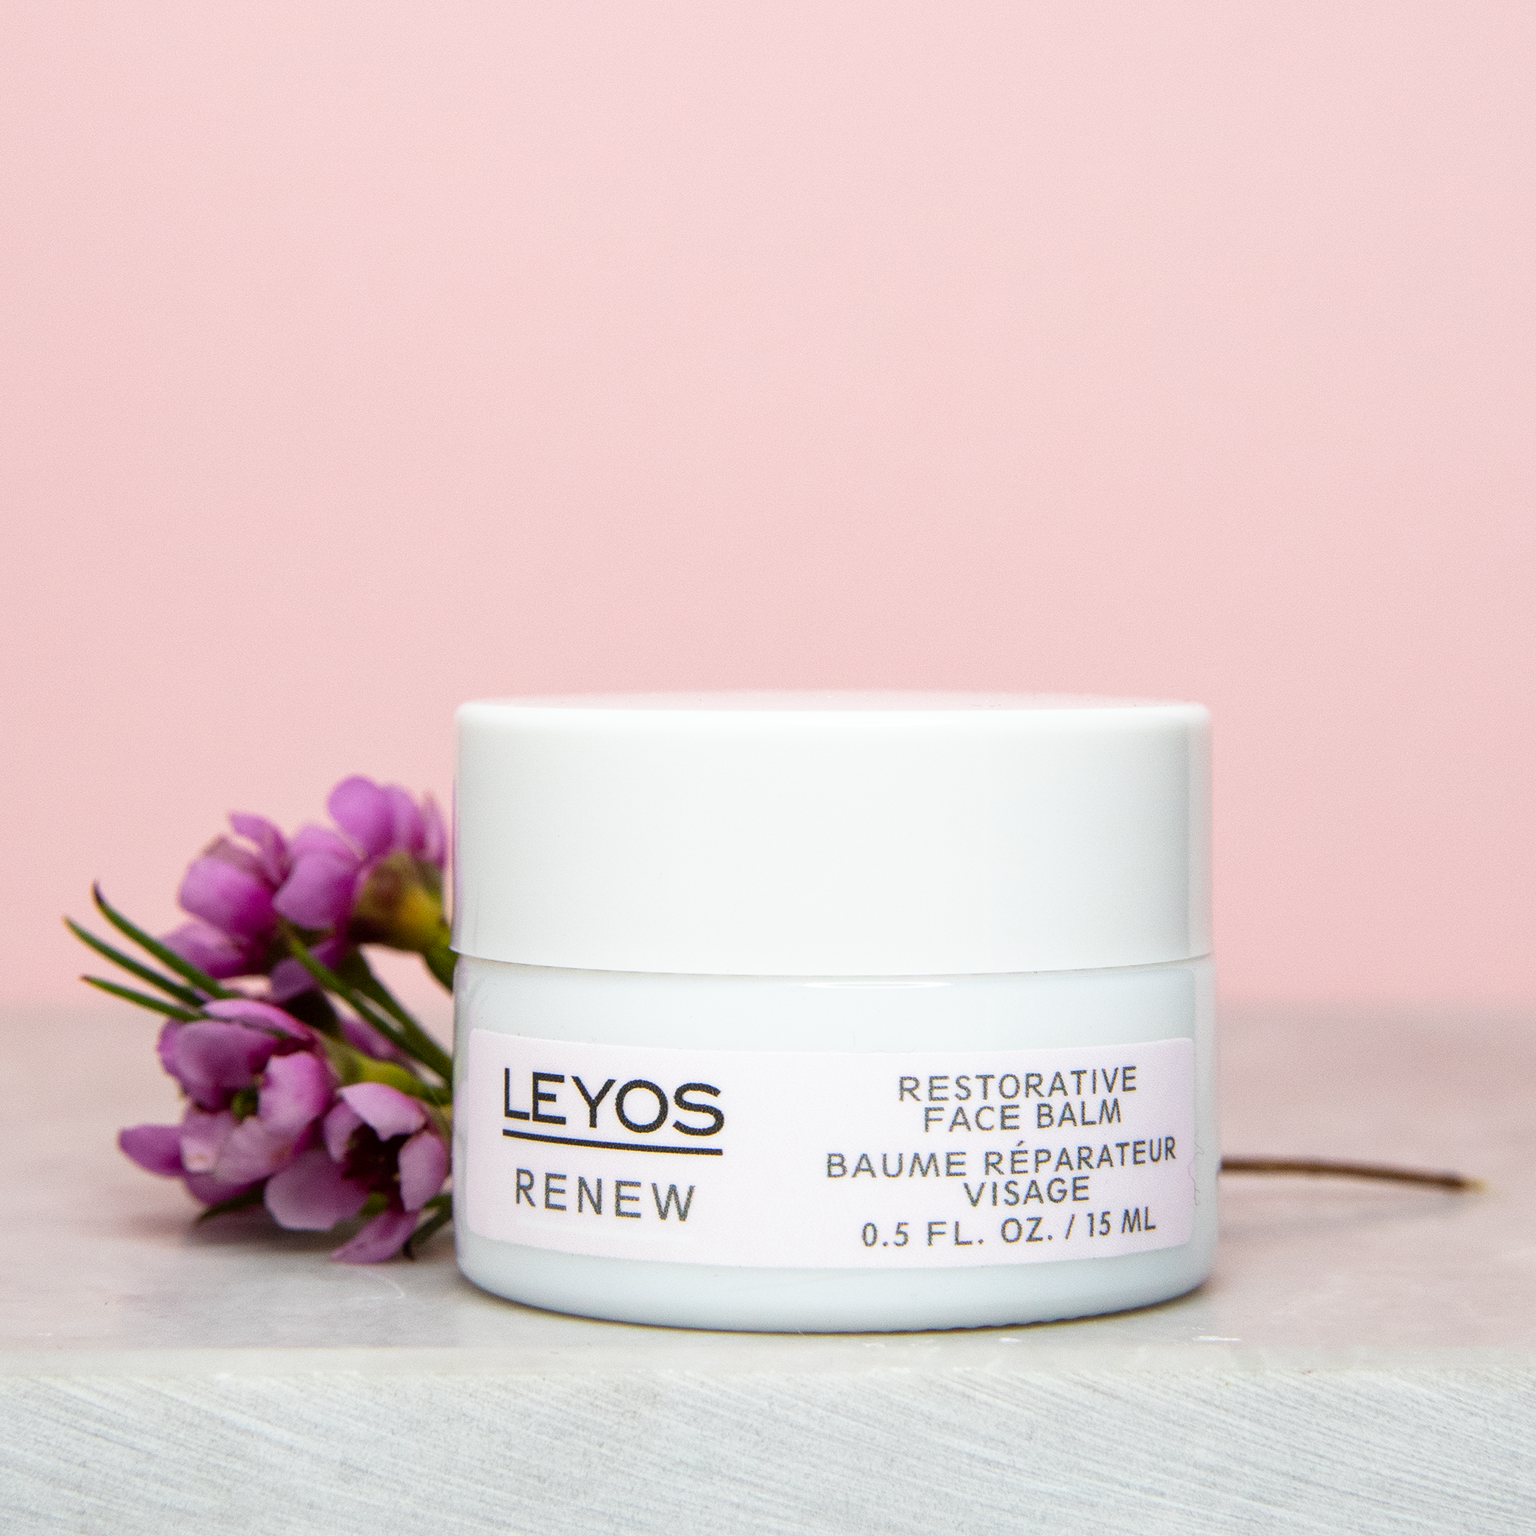 Renew Restorative Face Balm by Leyos